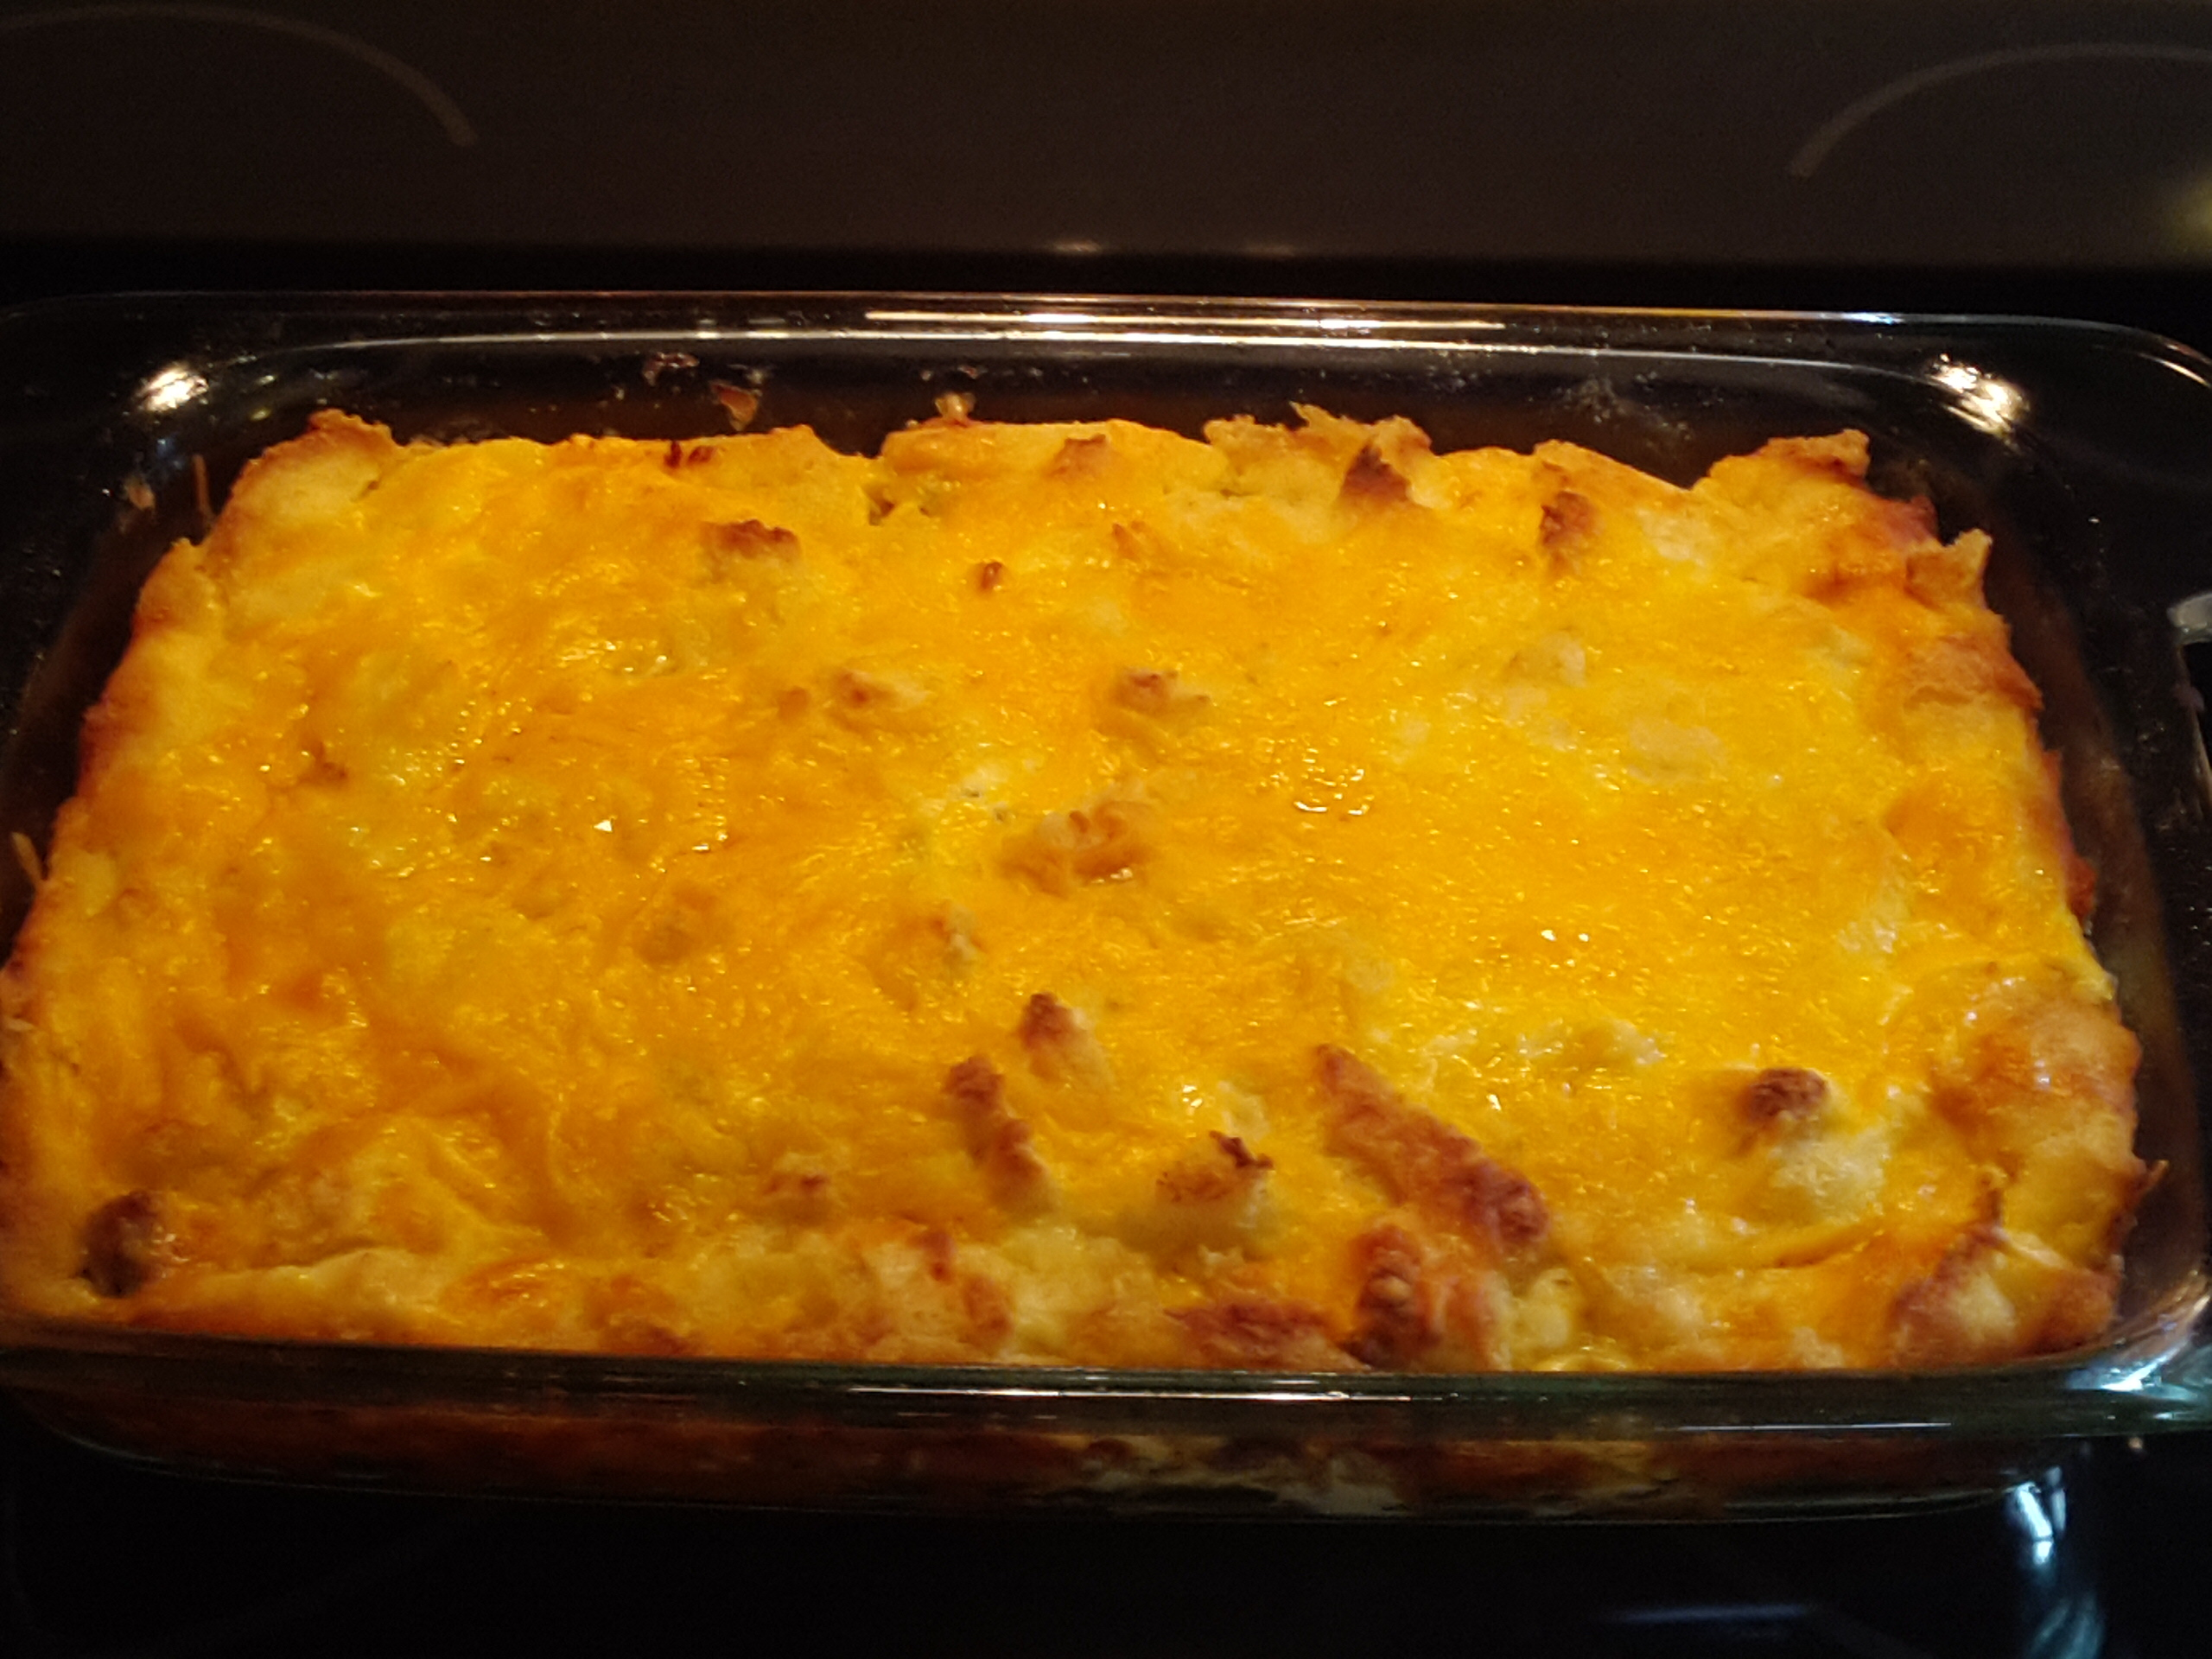 Brown the ground beef with the onions. Add the cream of mushroom soup and one can of water. Pour into a casserole dish. Add the cheddar cheese and the tater tots and stir. Sprinkle the mozzarella cheese on top. Bake at degrees for minutes or until cheese is lightly brown.